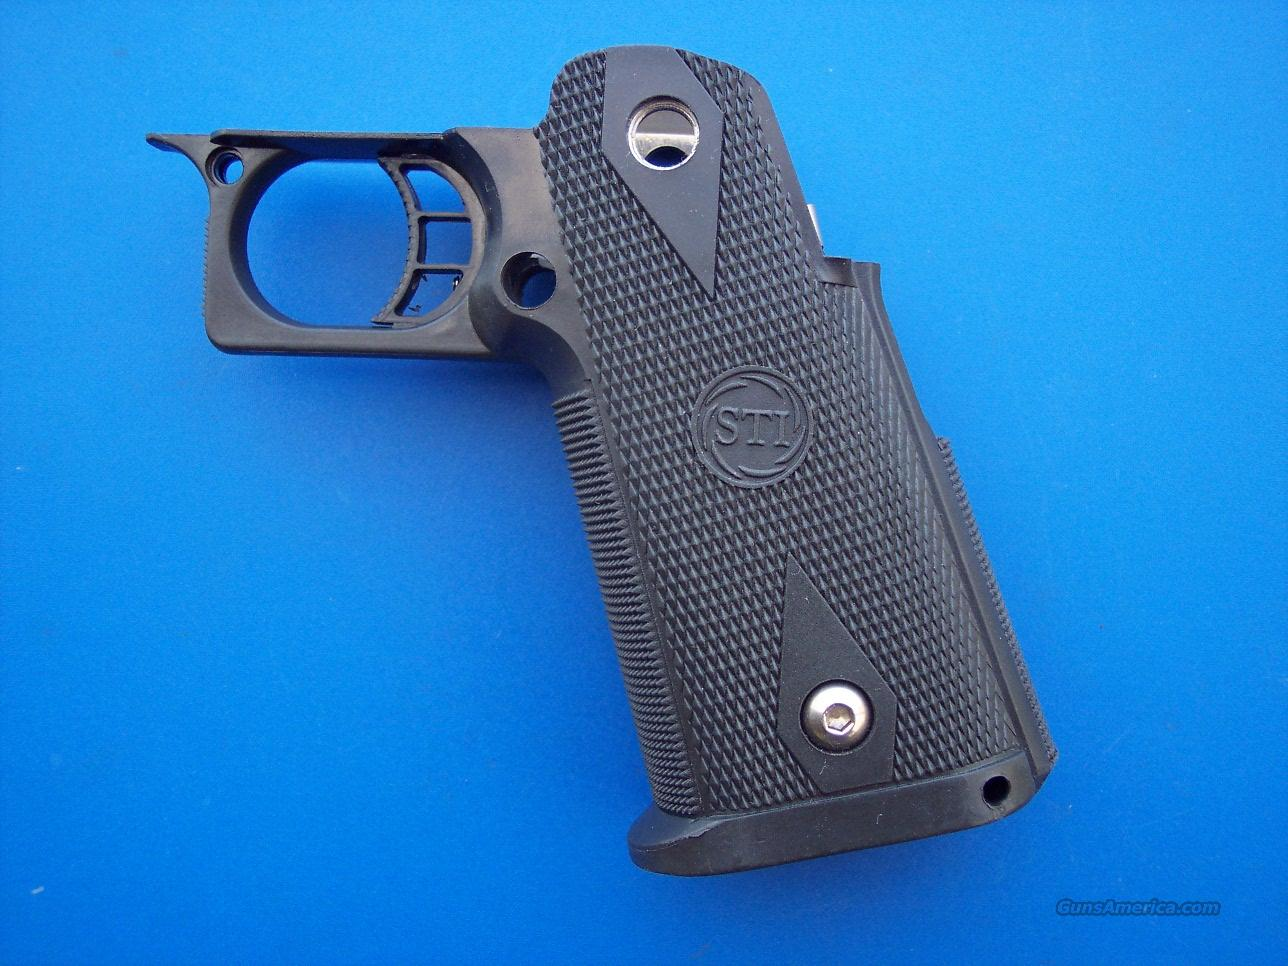 Sti 2011 Grip W Trigger Amp Mainspring Housing For Sale